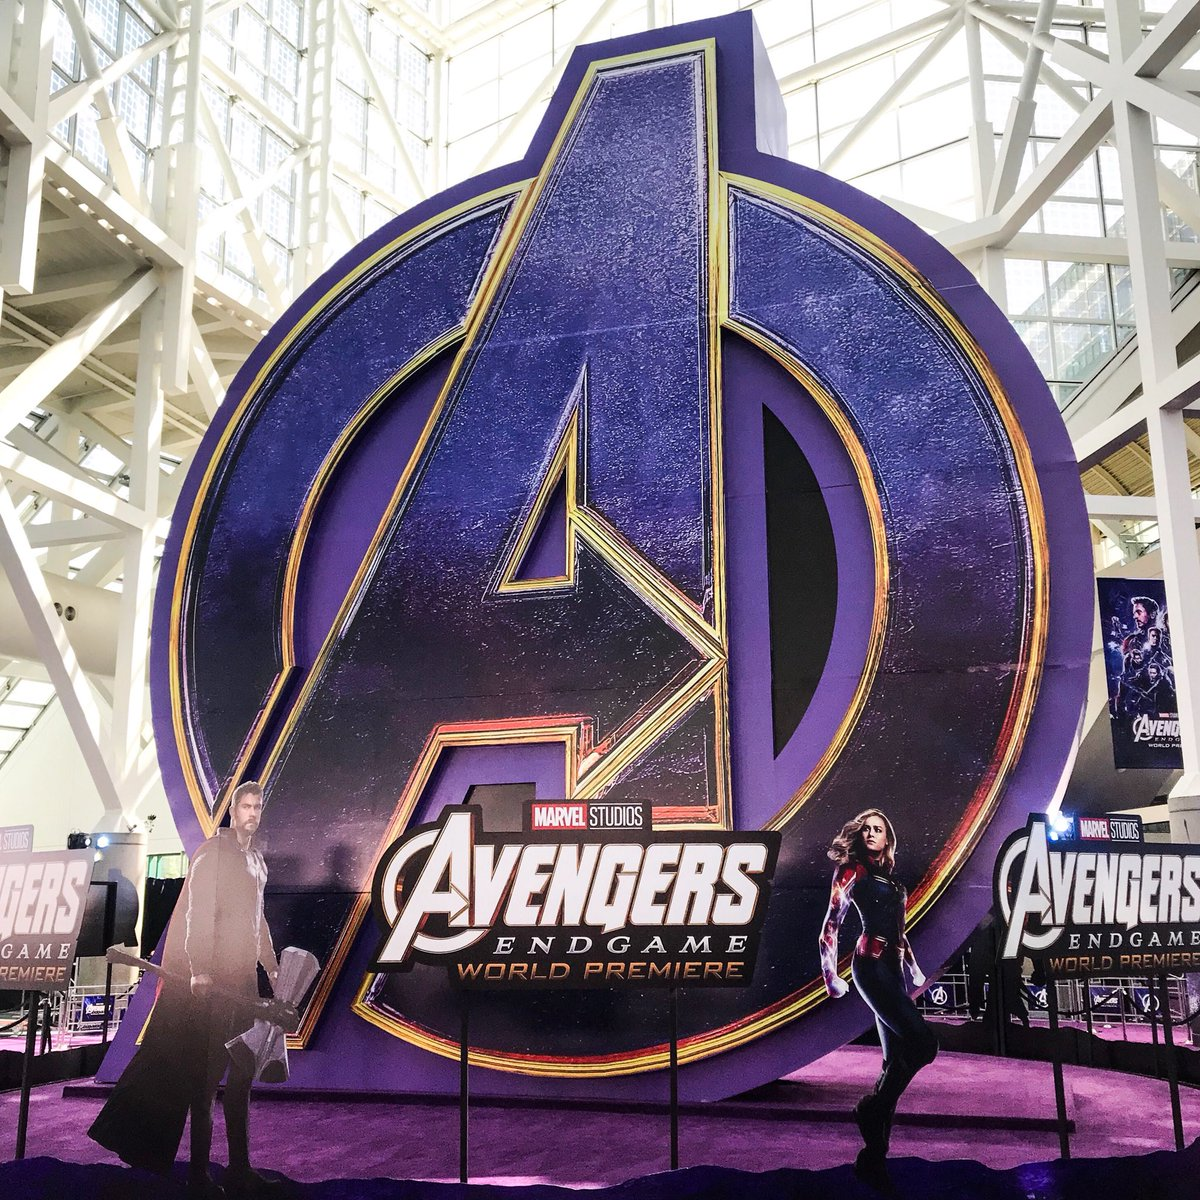 We're here at the World Premiere of Marvel Studios' #AvengersEndgame in L.A.! Follow along here and on our Instagram Stories for a behind-the-scenes look, and tune in to our livestream at 4:30pm PT: http://www.marvel.com/endgamepremiere